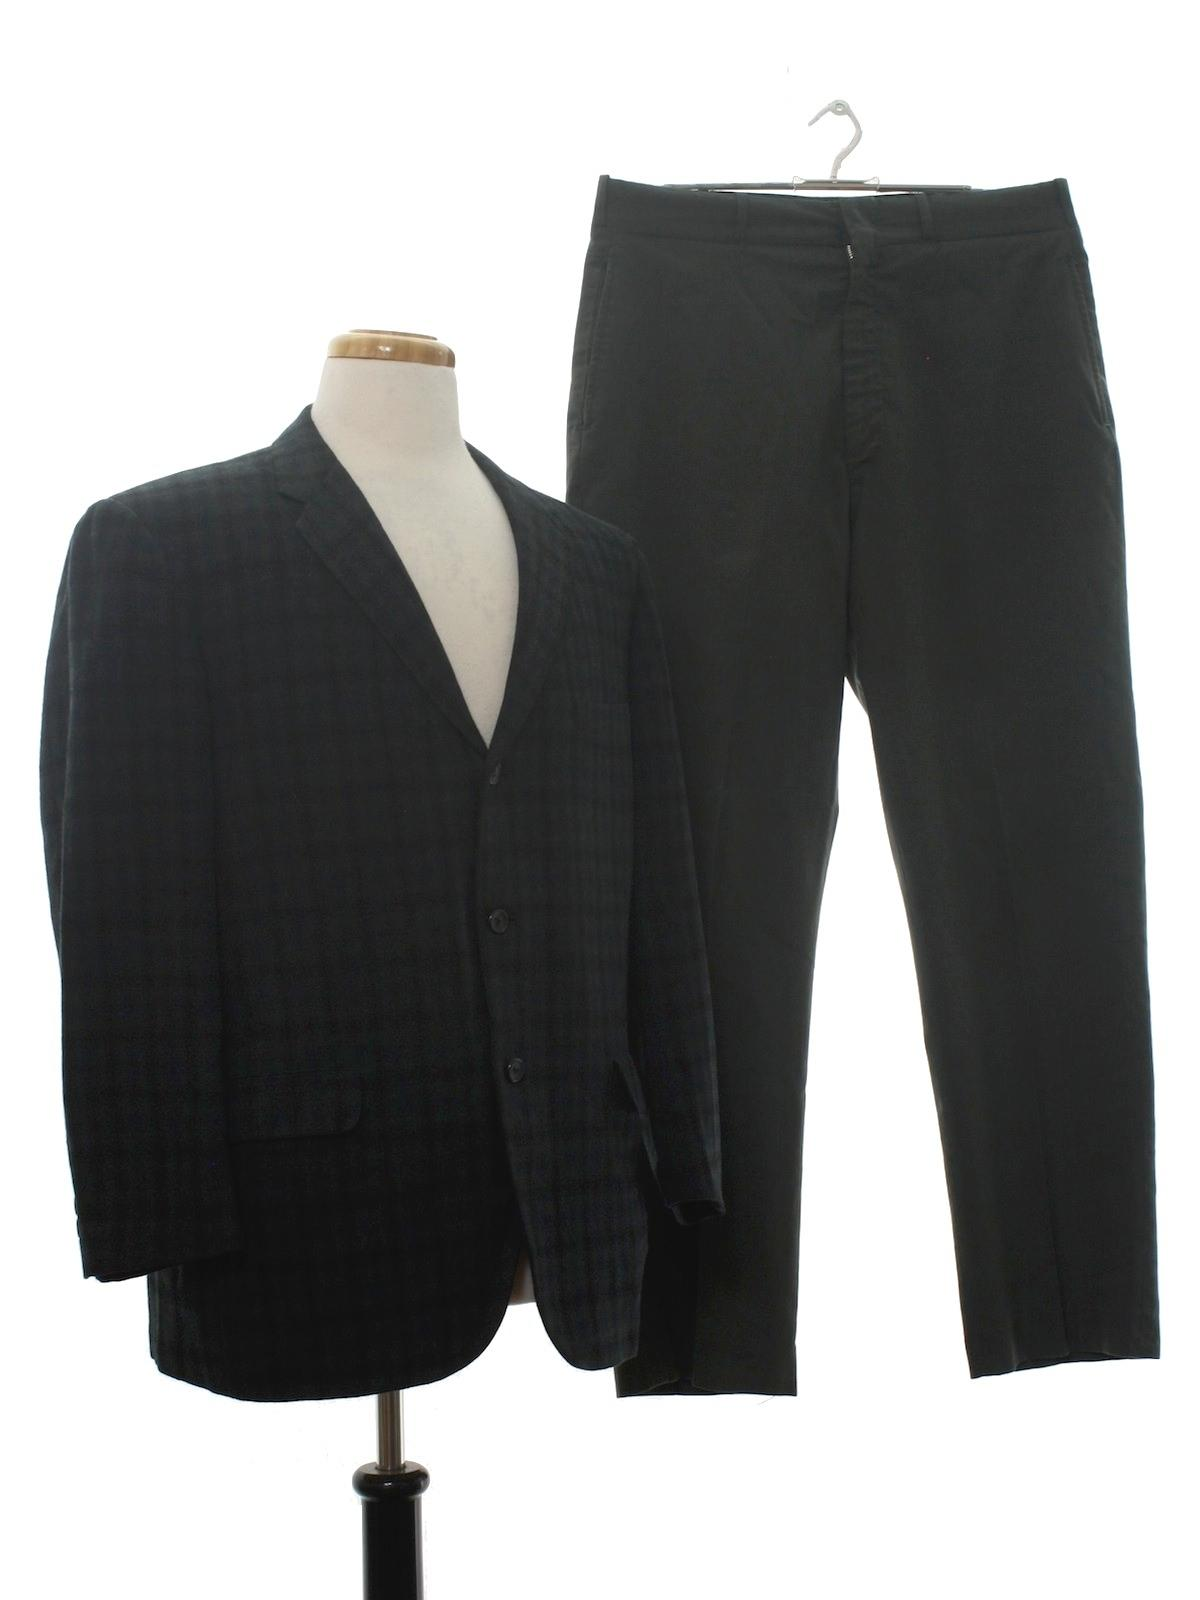 5c6e9a26db34 Retro Fifties Suit: Late 50s -Broadmoor- Mens two piece combo mod ...